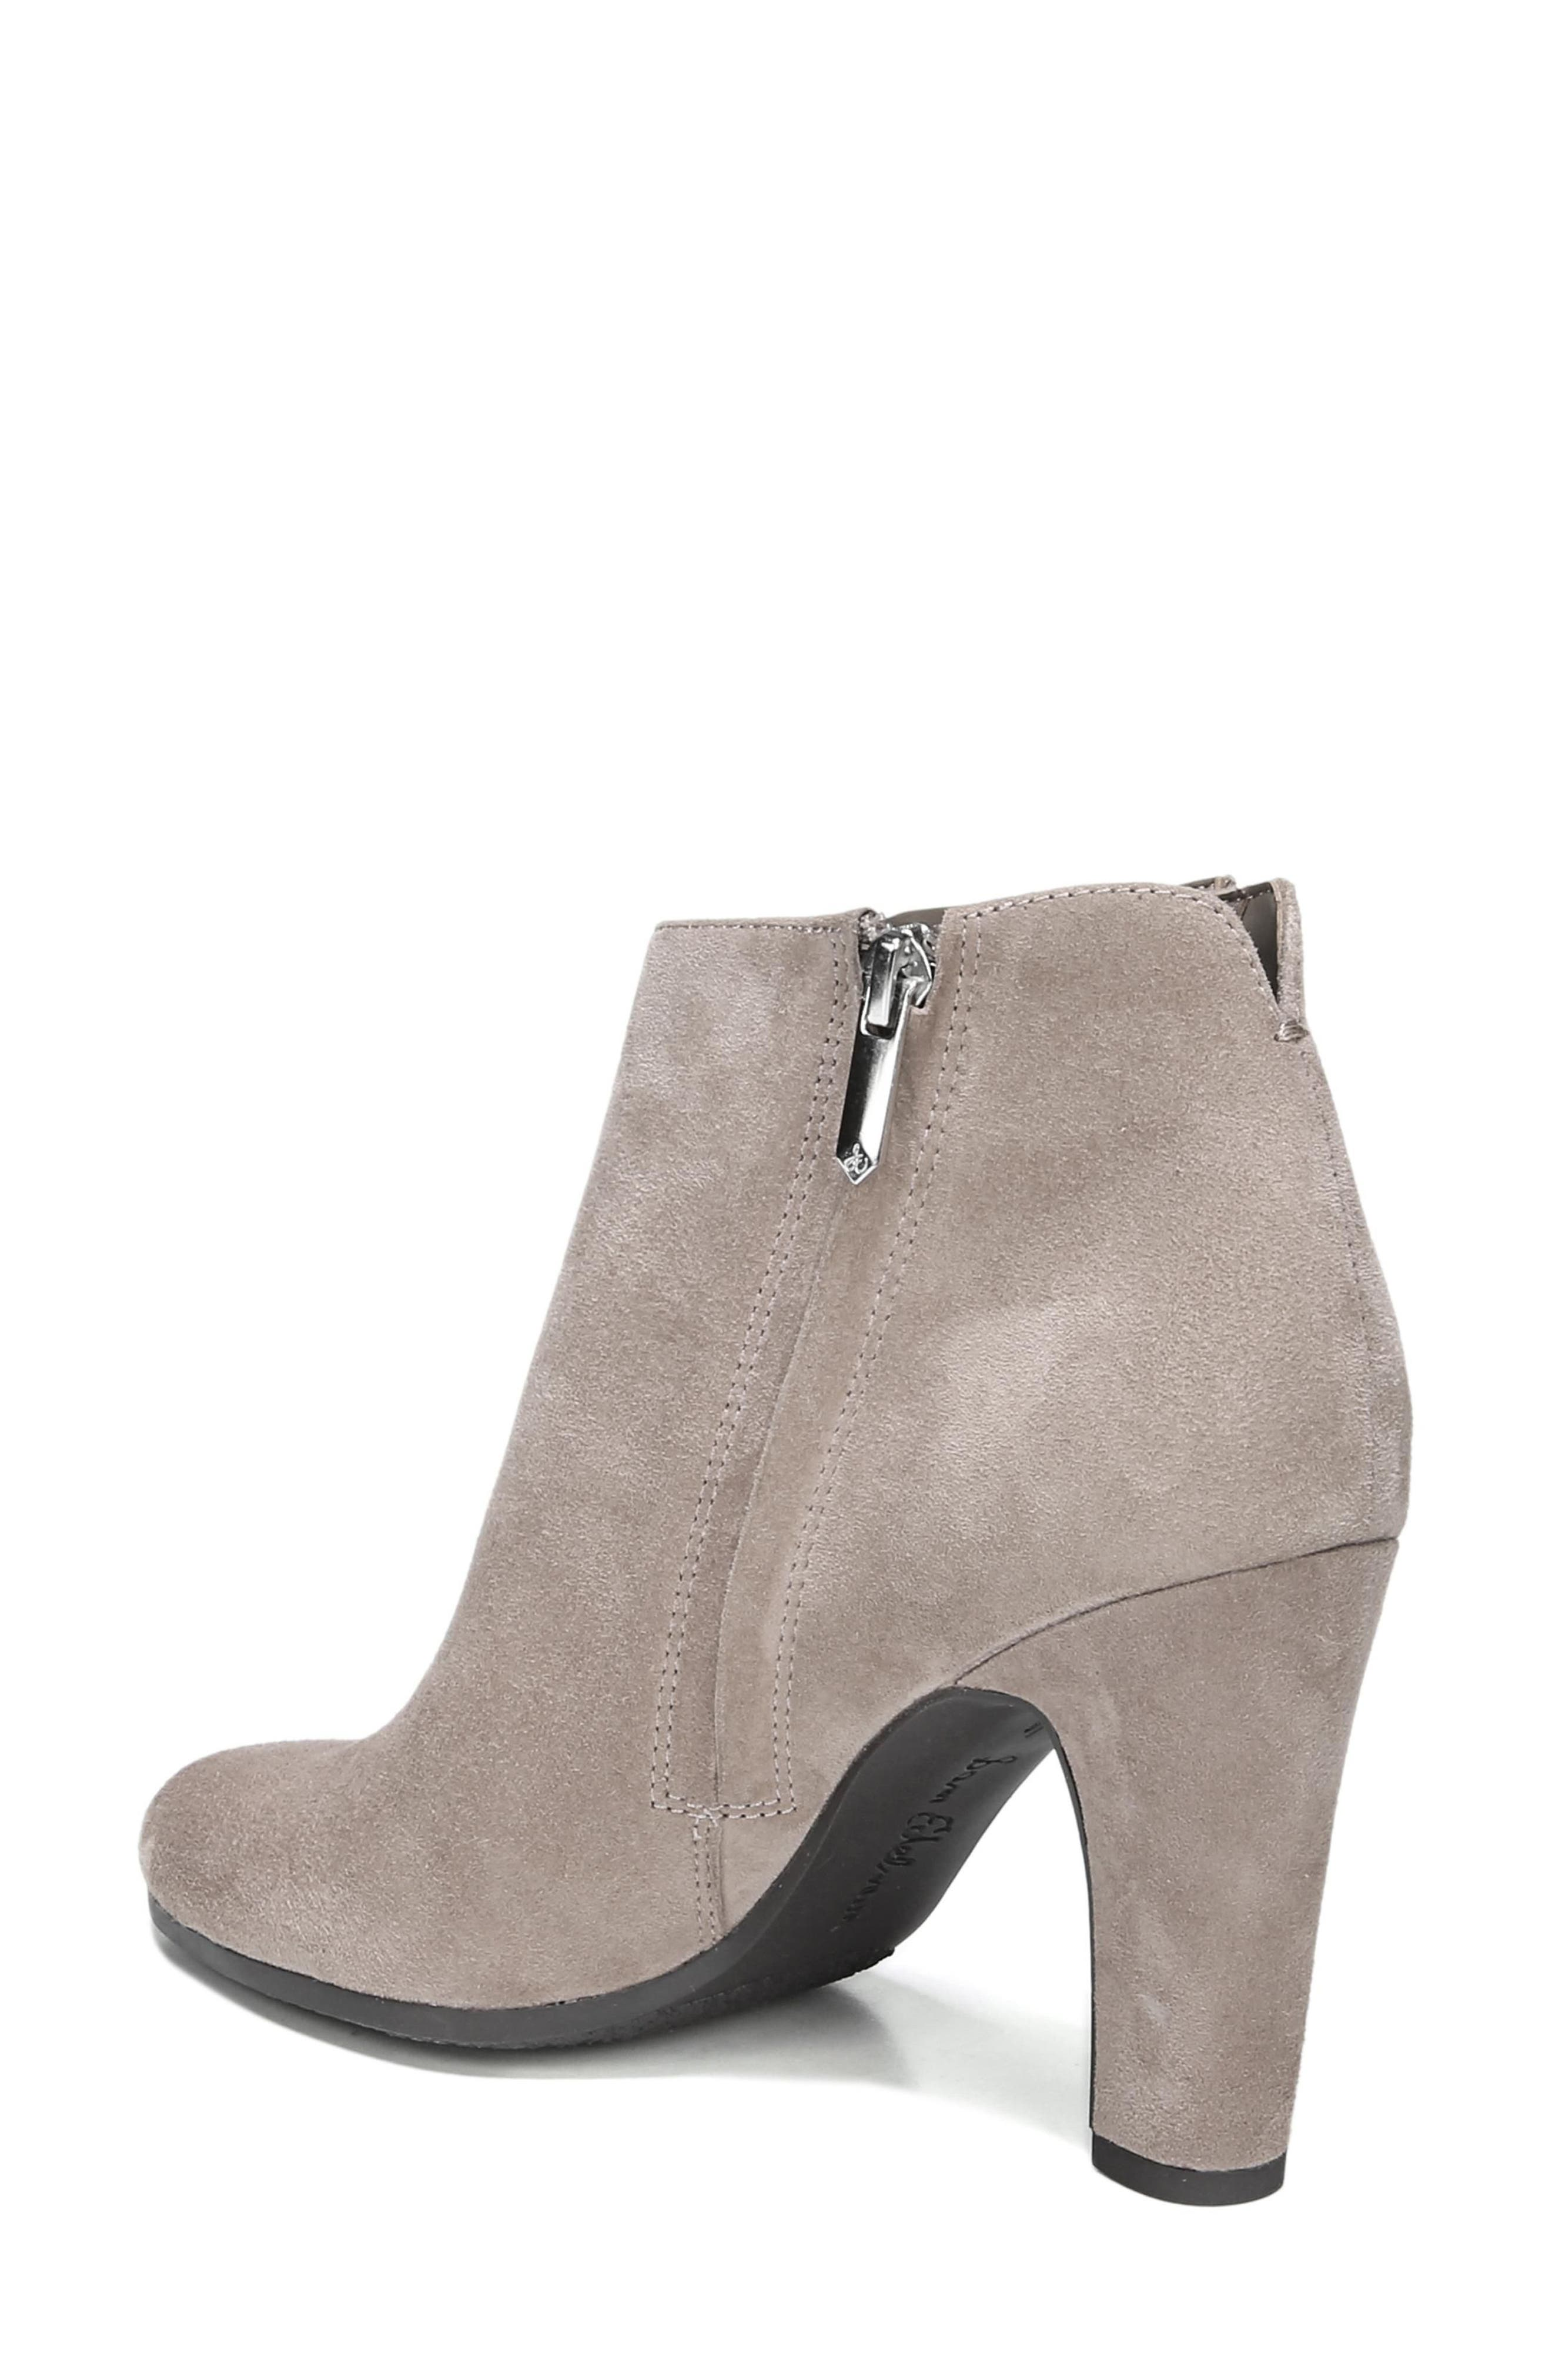 Sadee Angle Zip Bootie,                             Alternate thumbnail 2, color,                             New Putty Suede